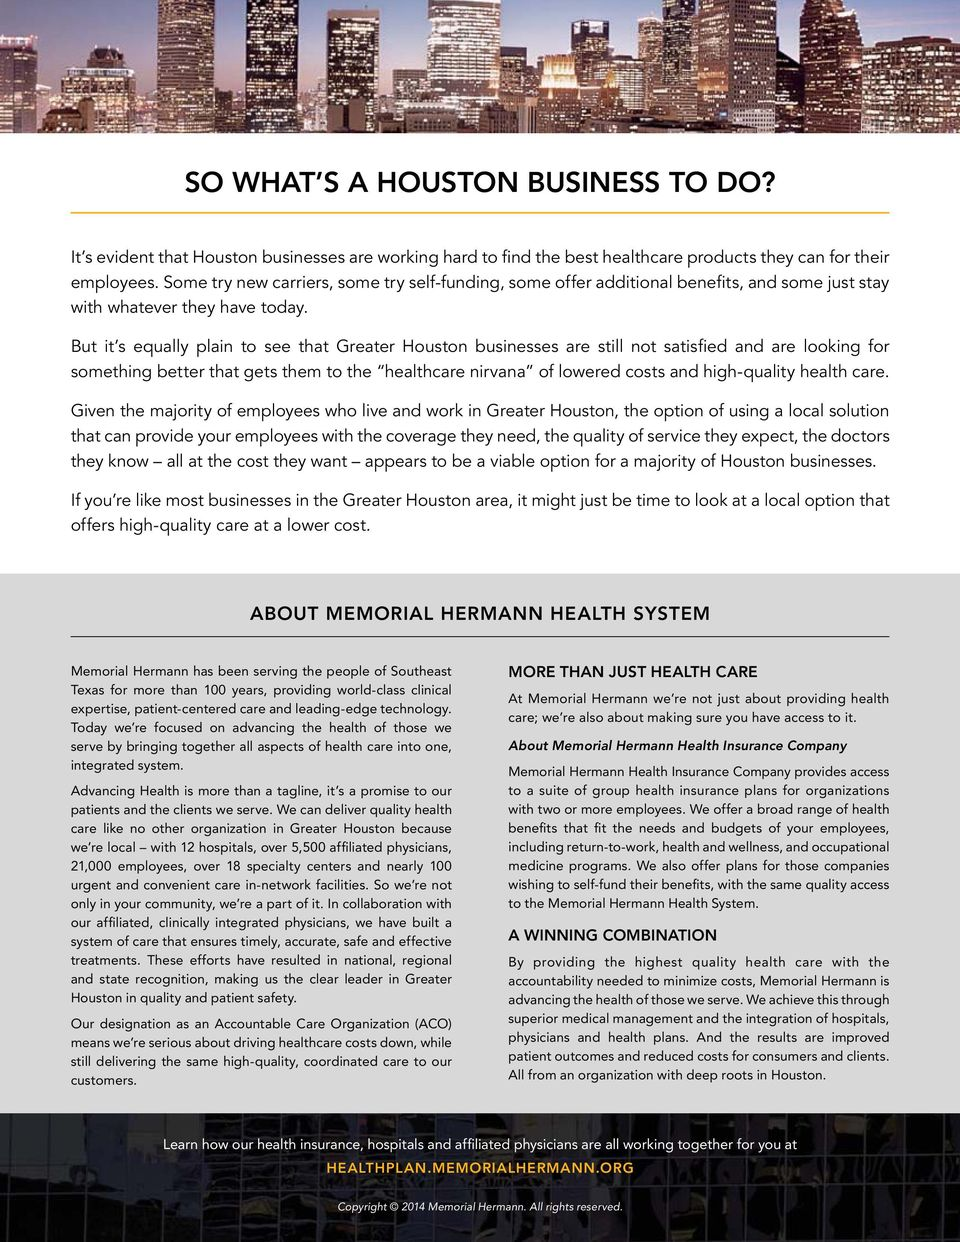 But it s equally plain to see that Greater Houston businesses are still not satisfied and are looking for something better that gets them to the healthcare nirvana of lowered costs and high-quality